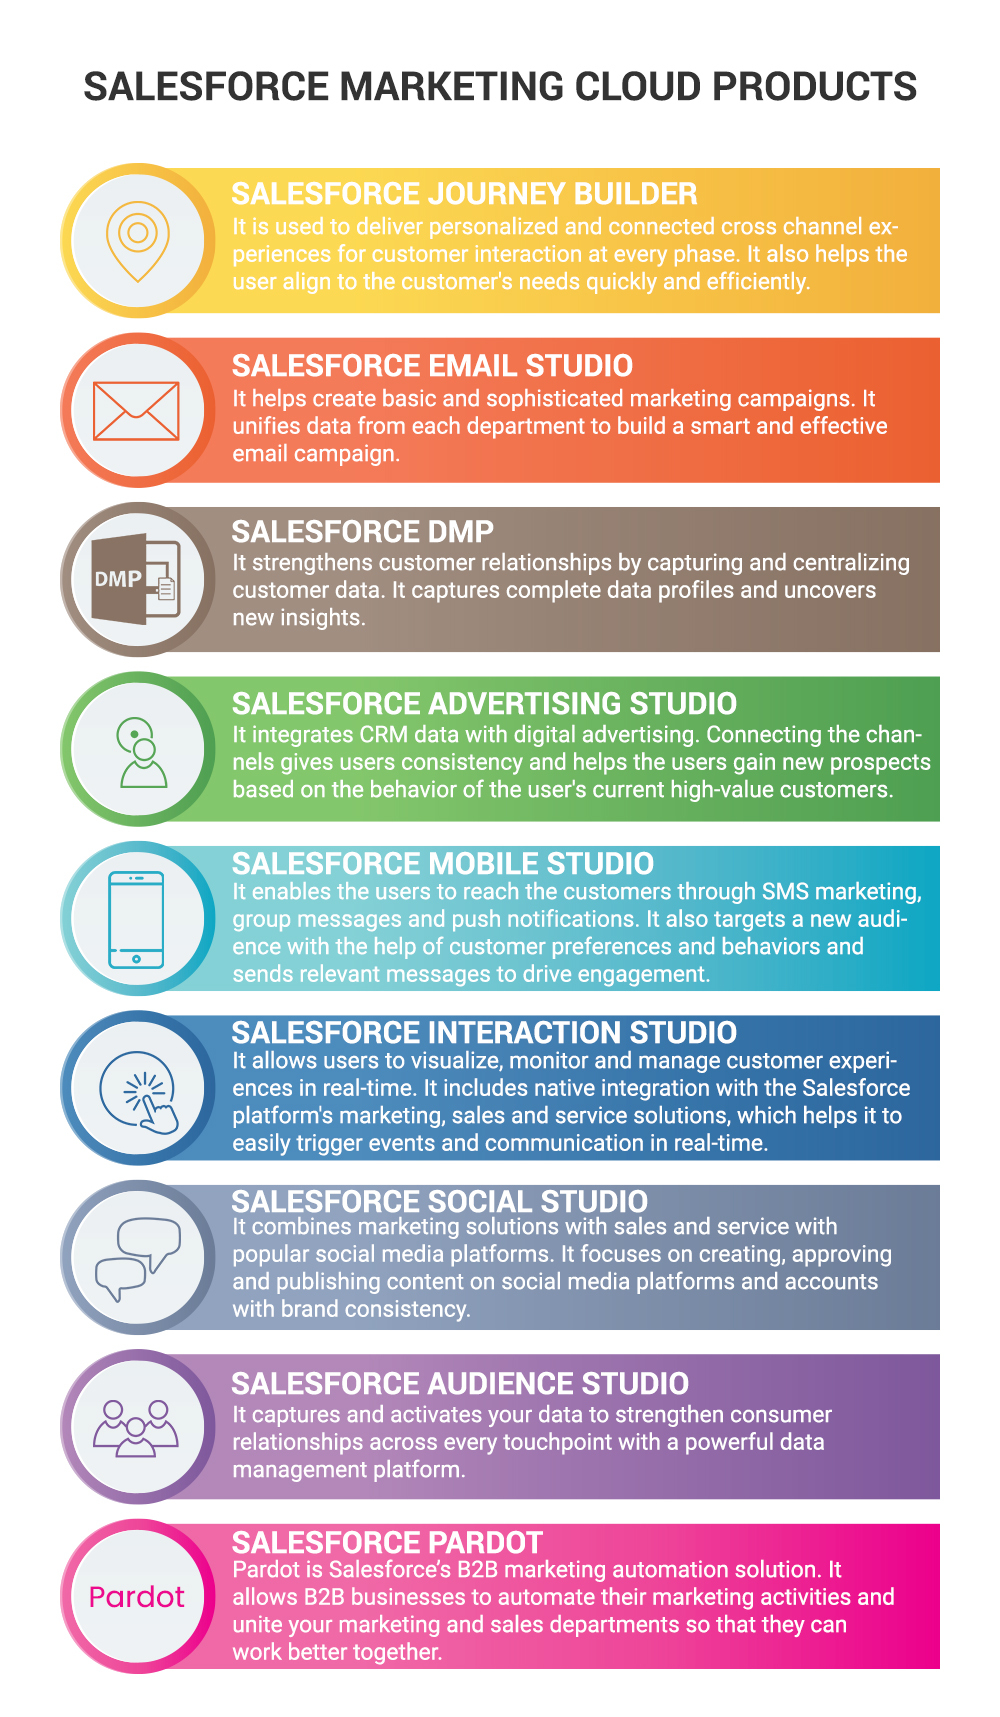 Different Salesforce Marketing Cloud Products